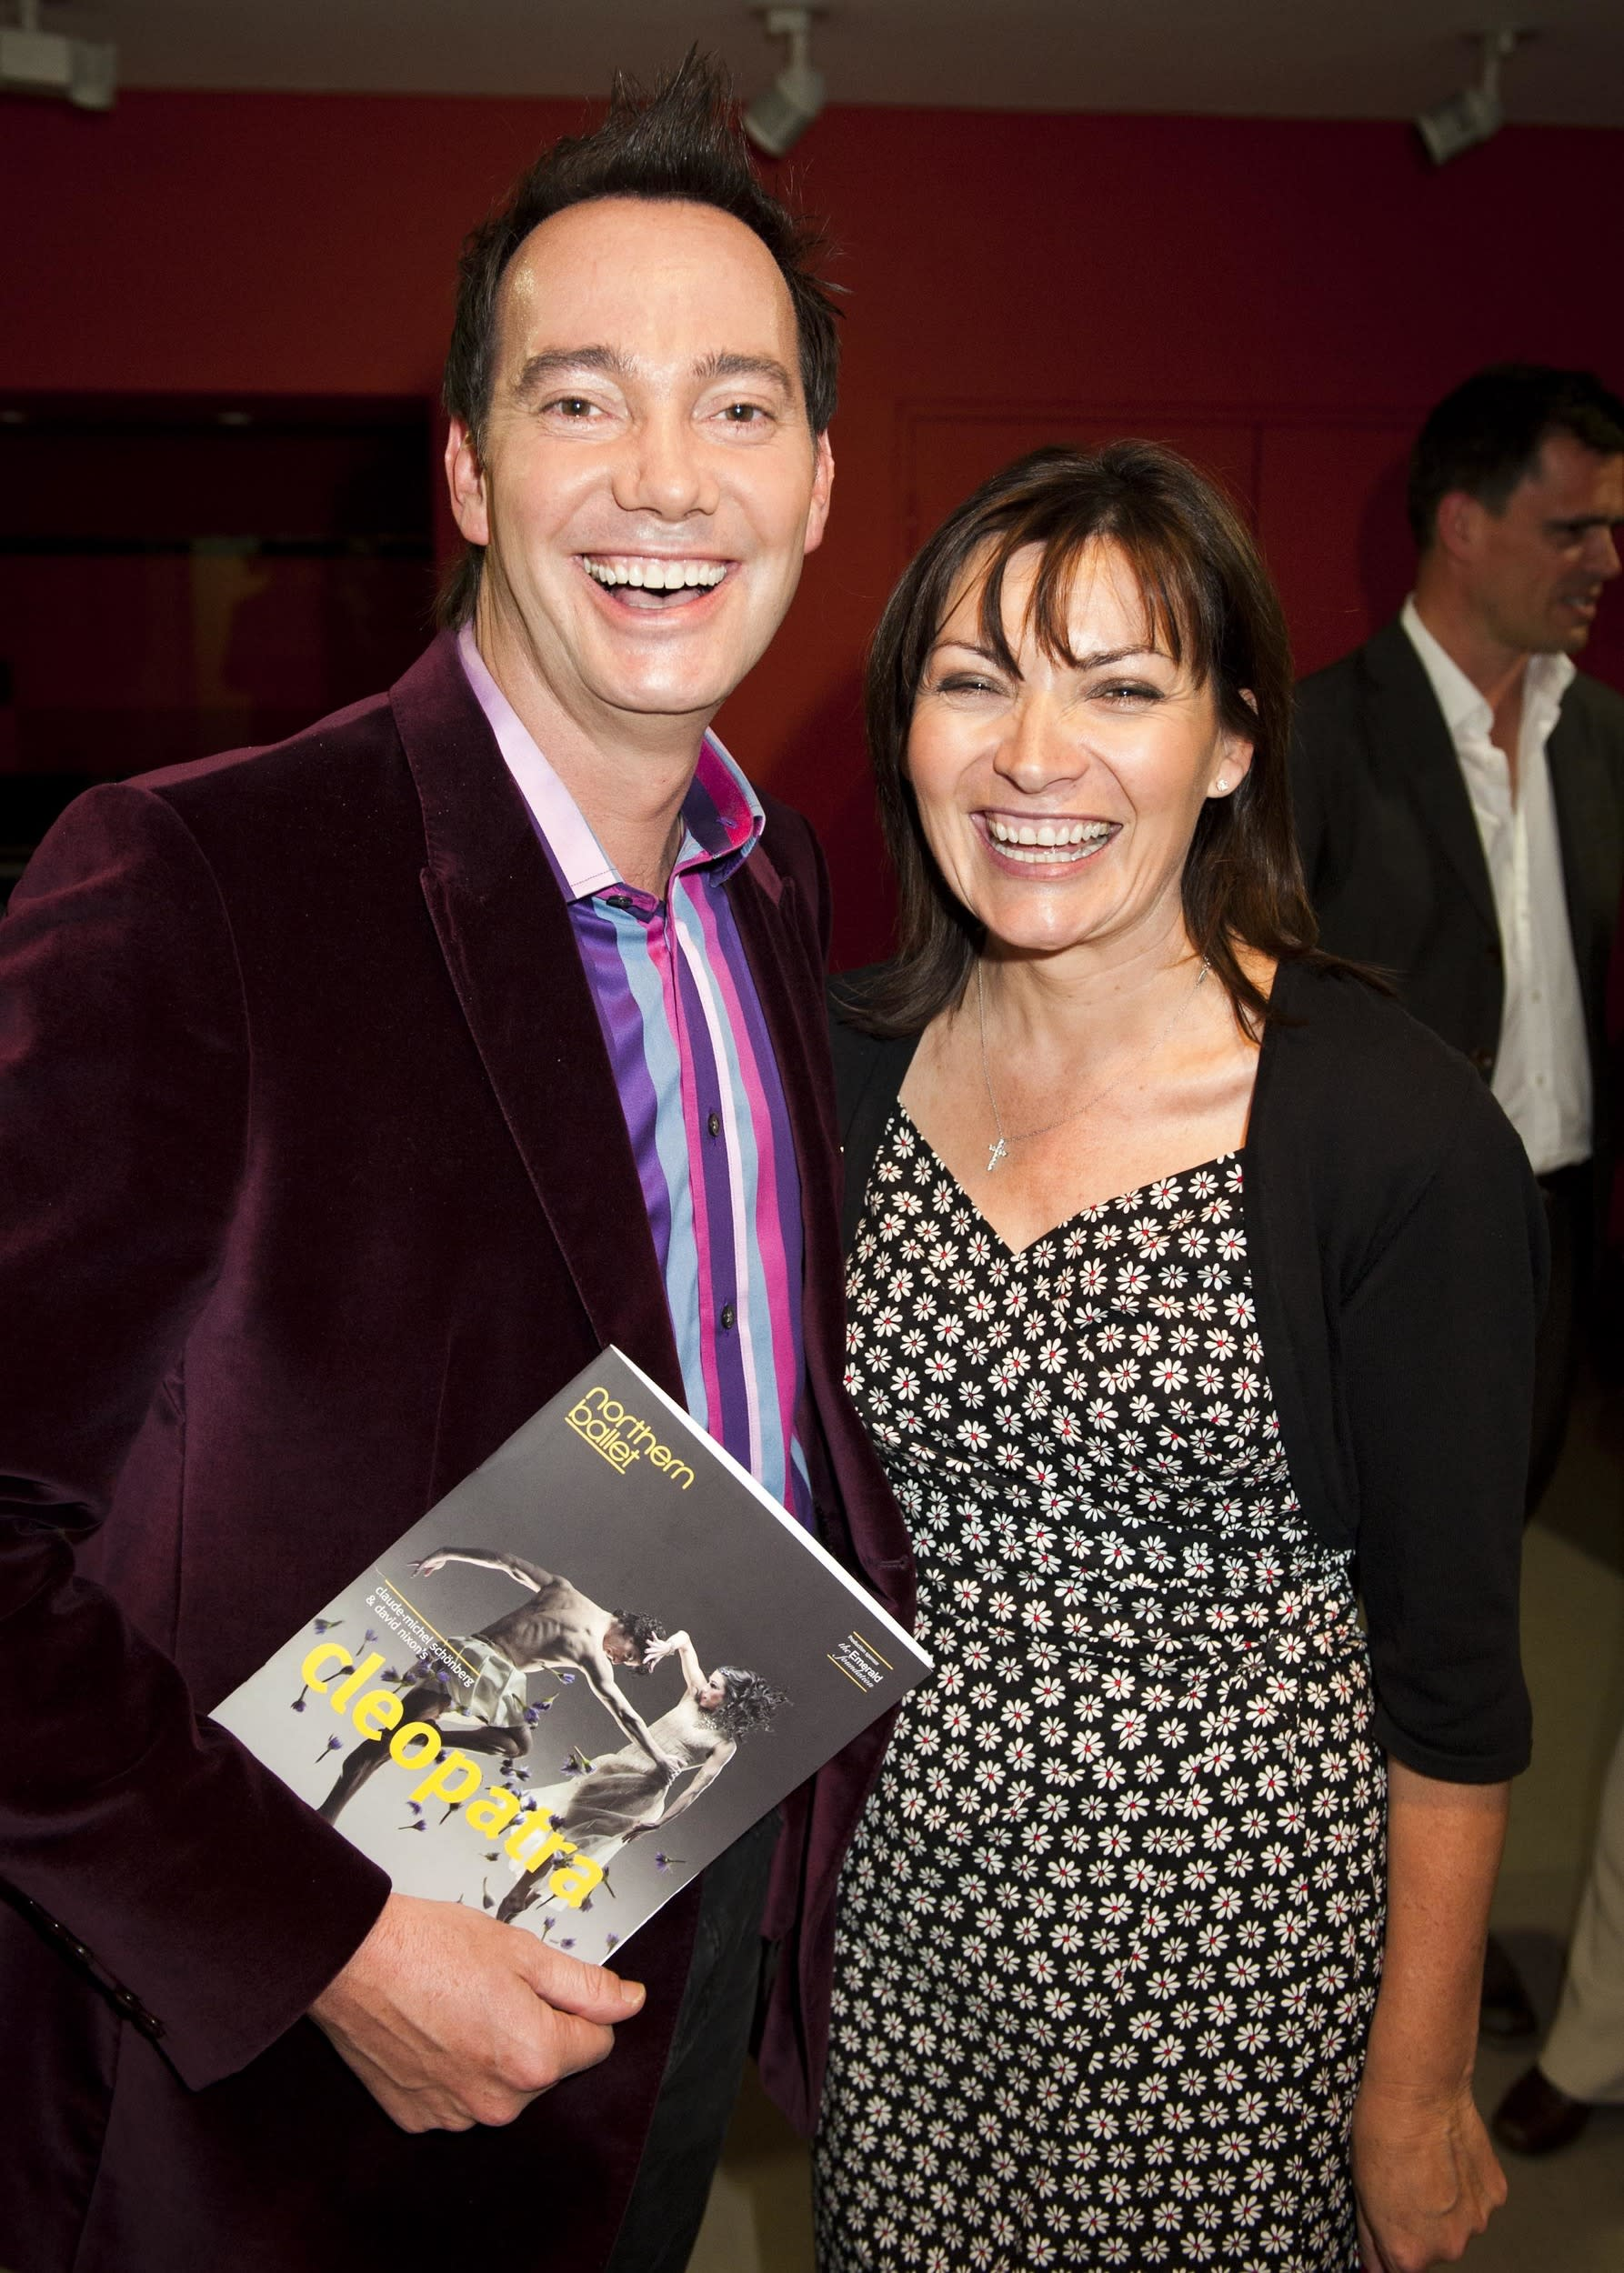 Craig Revel Horwood and Lorraine Kelly attend the opening night of Northern Ballet's Cleopatra at Sadler's Wells, London, 17th May 2011.